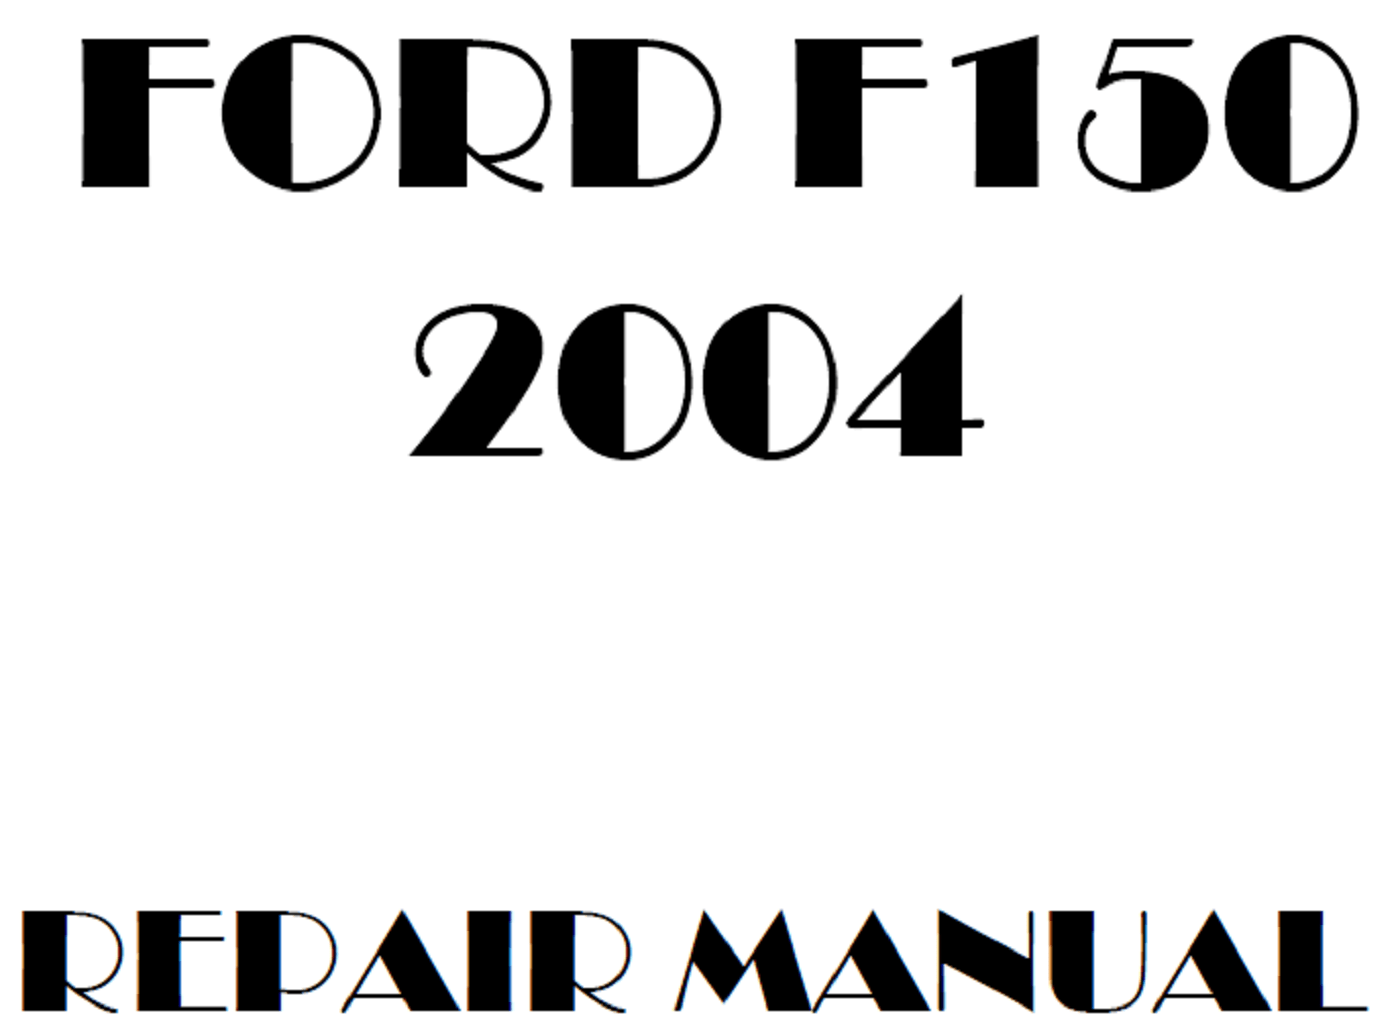 2004 Ford F150 repair manual